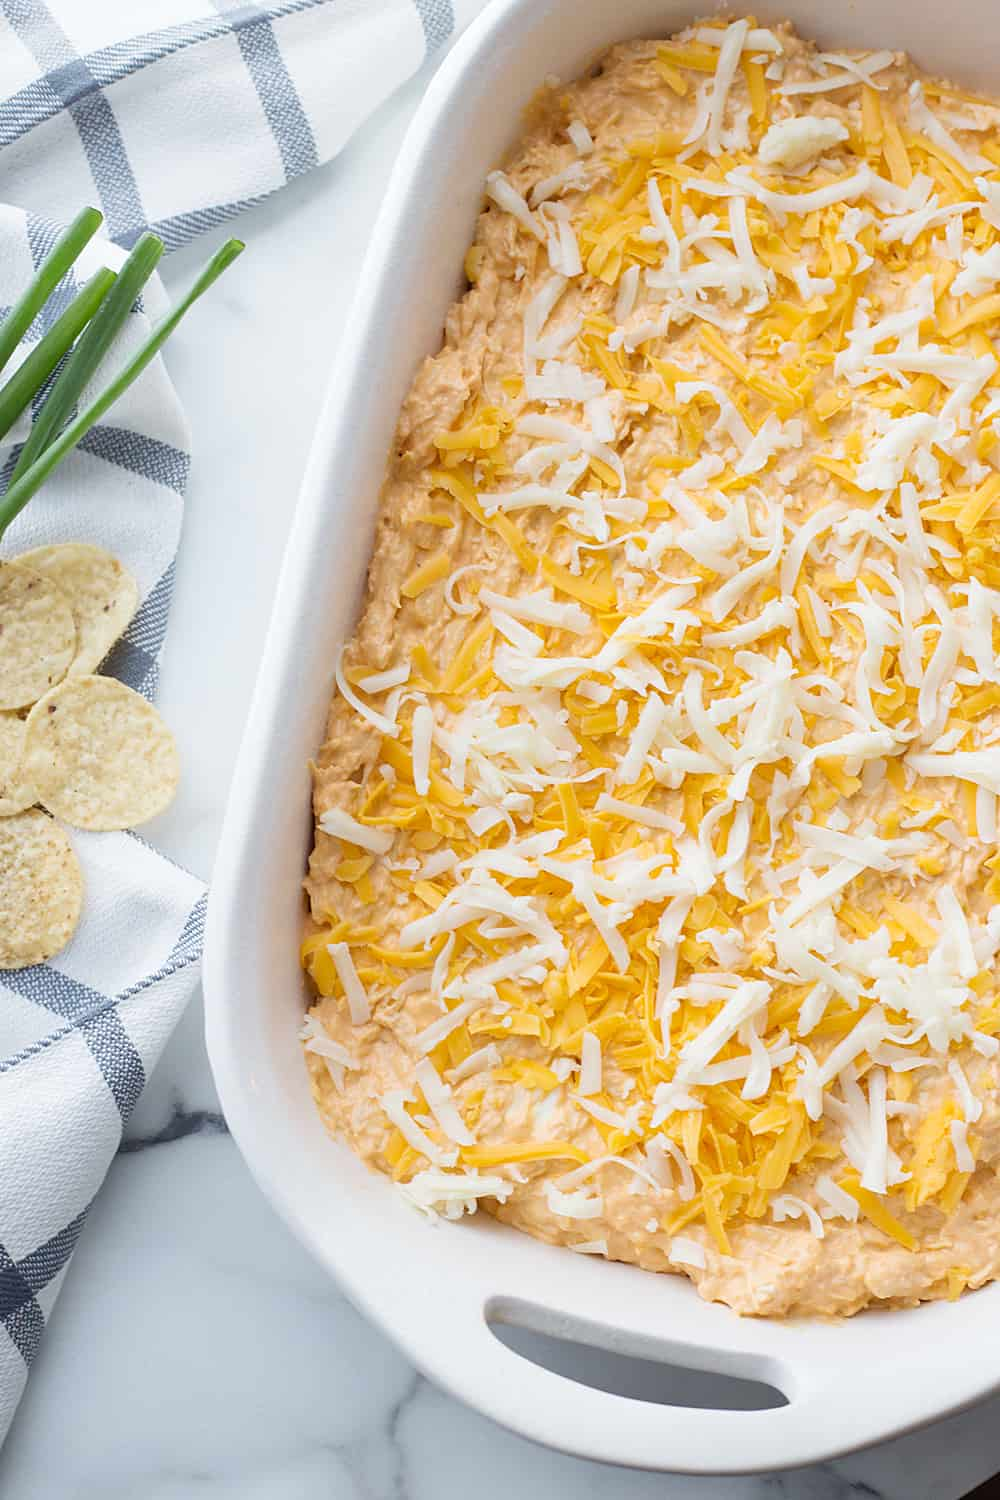 Best Buffalo Chicken Dip - Cheesy, creamy, and all kinds of spicy! There's a reason this buffalo chicken dip is affectionately known as crack chicken dip. #appetizer #buffalo #buffalodip #buffalochicken #recipe #halfscratched #easyrecipe